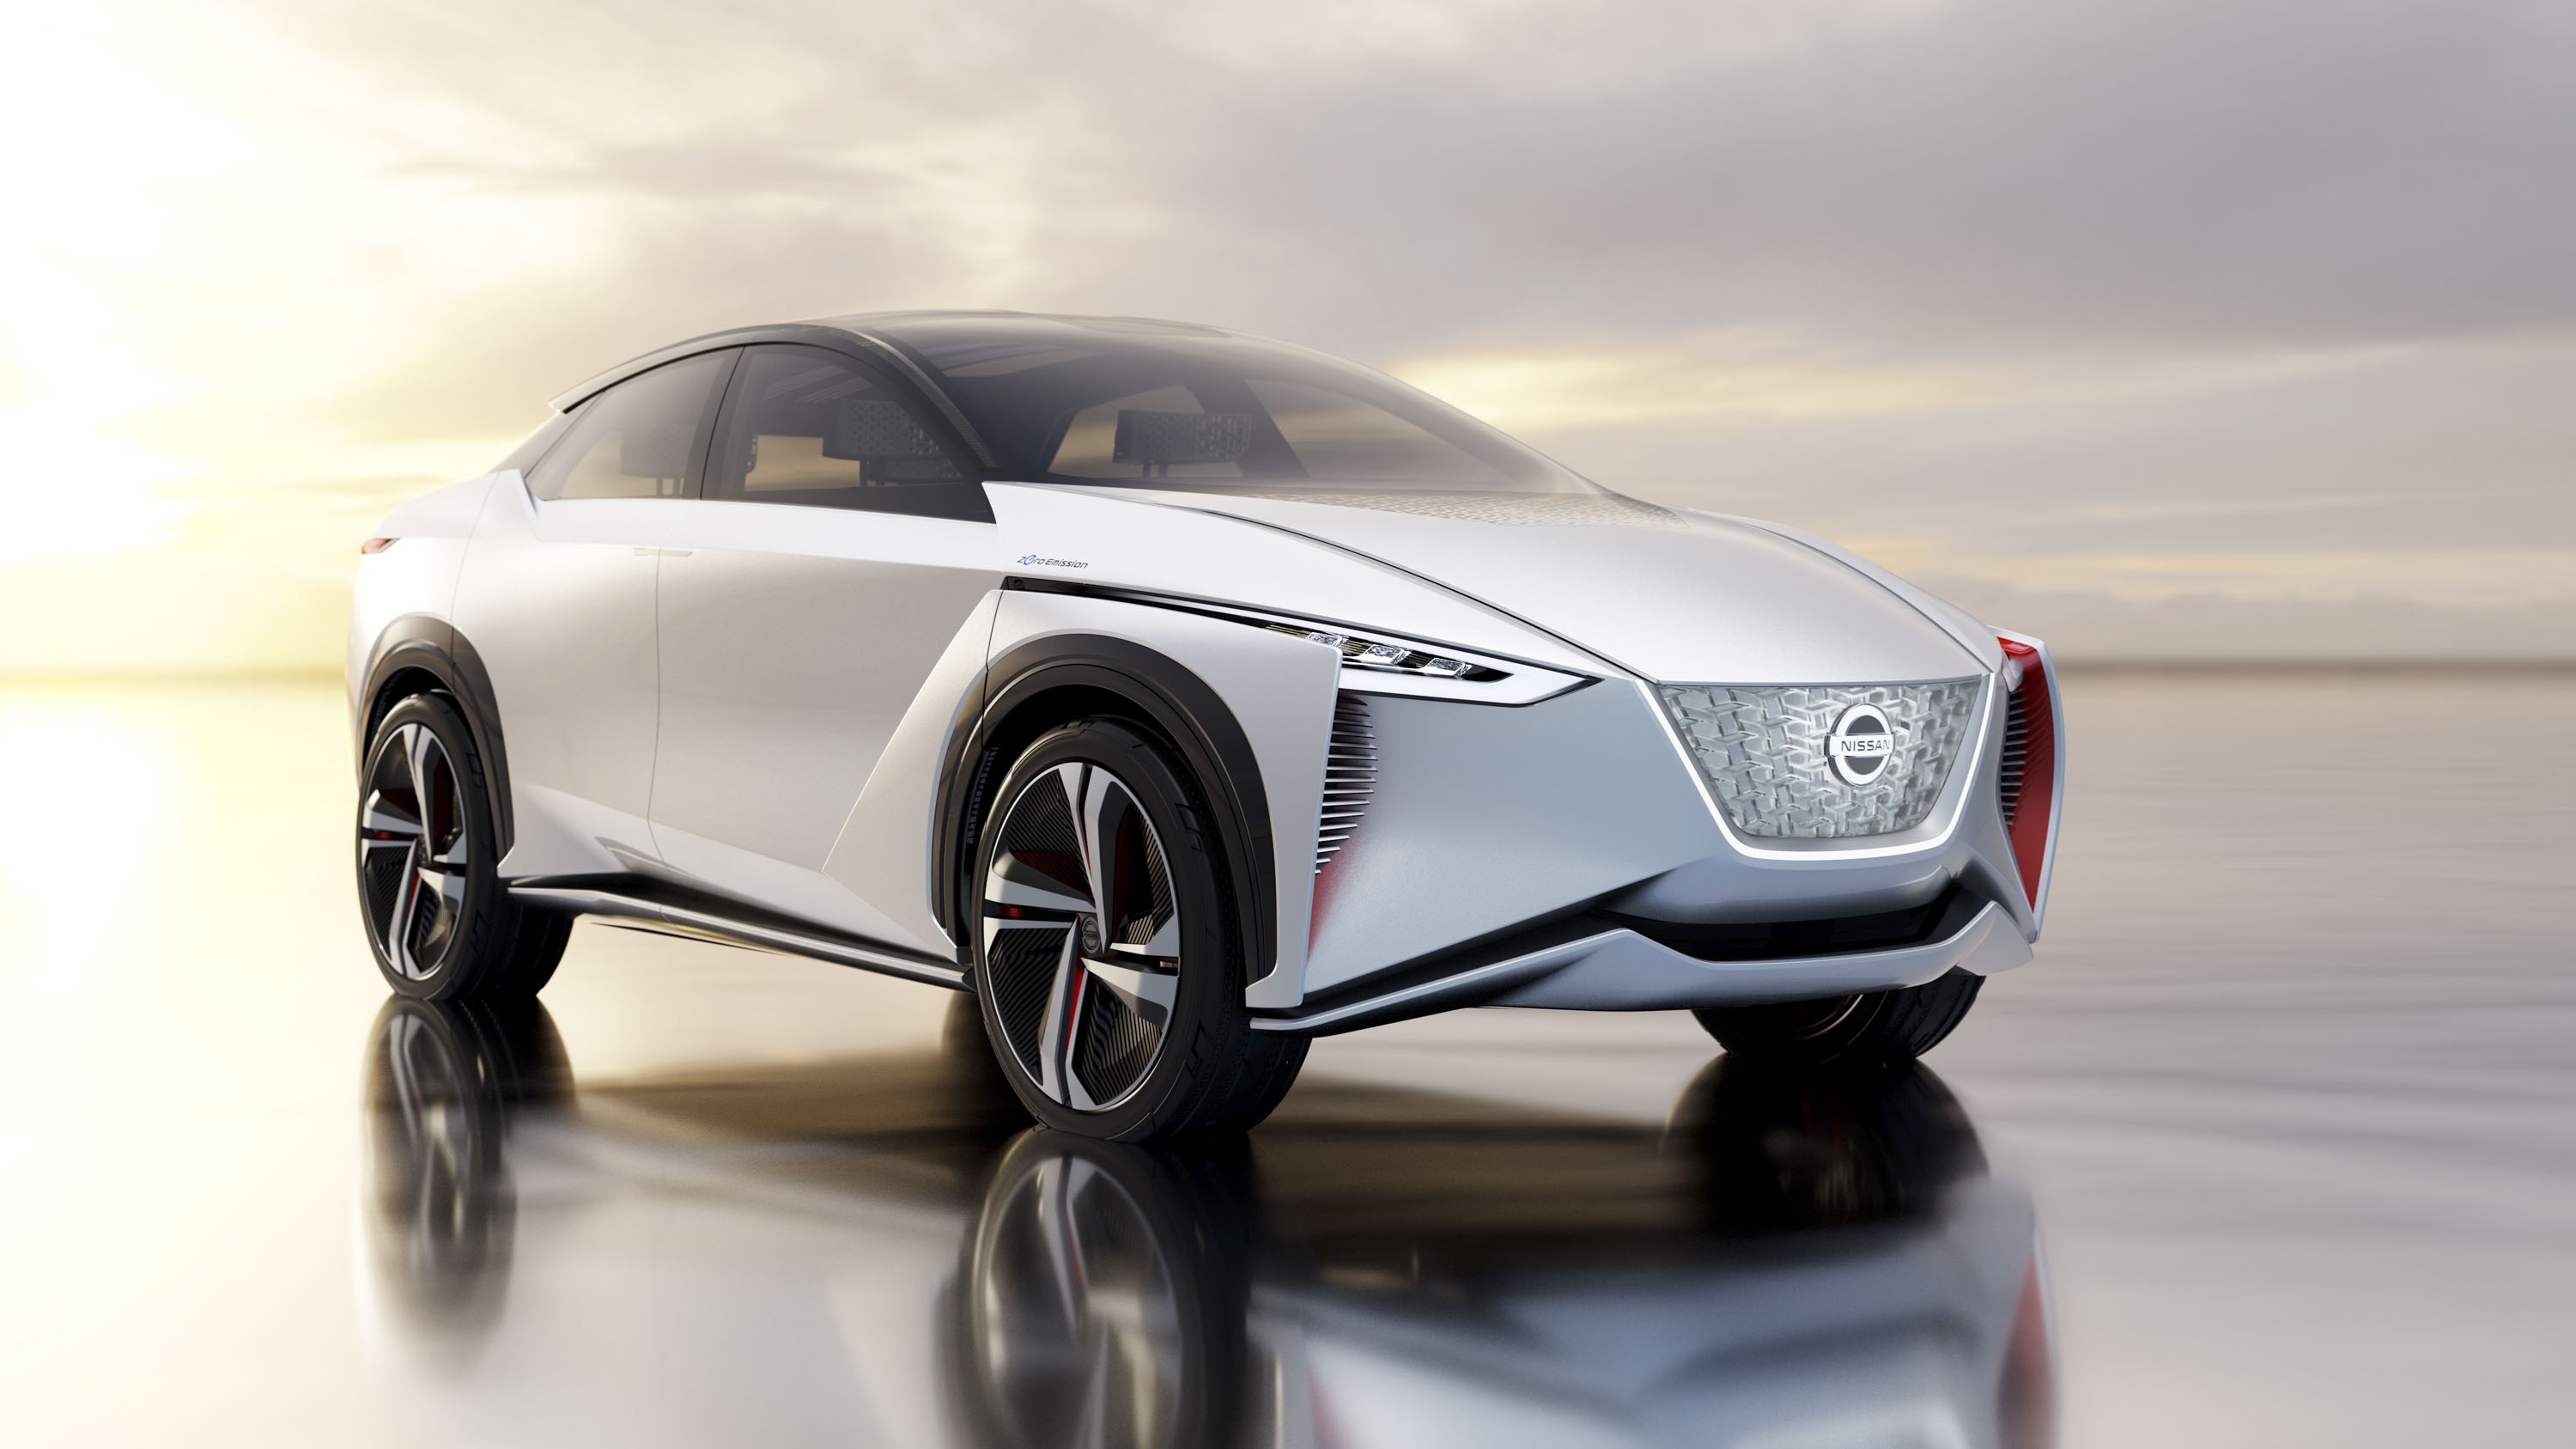 Image result for nissan imx top speed